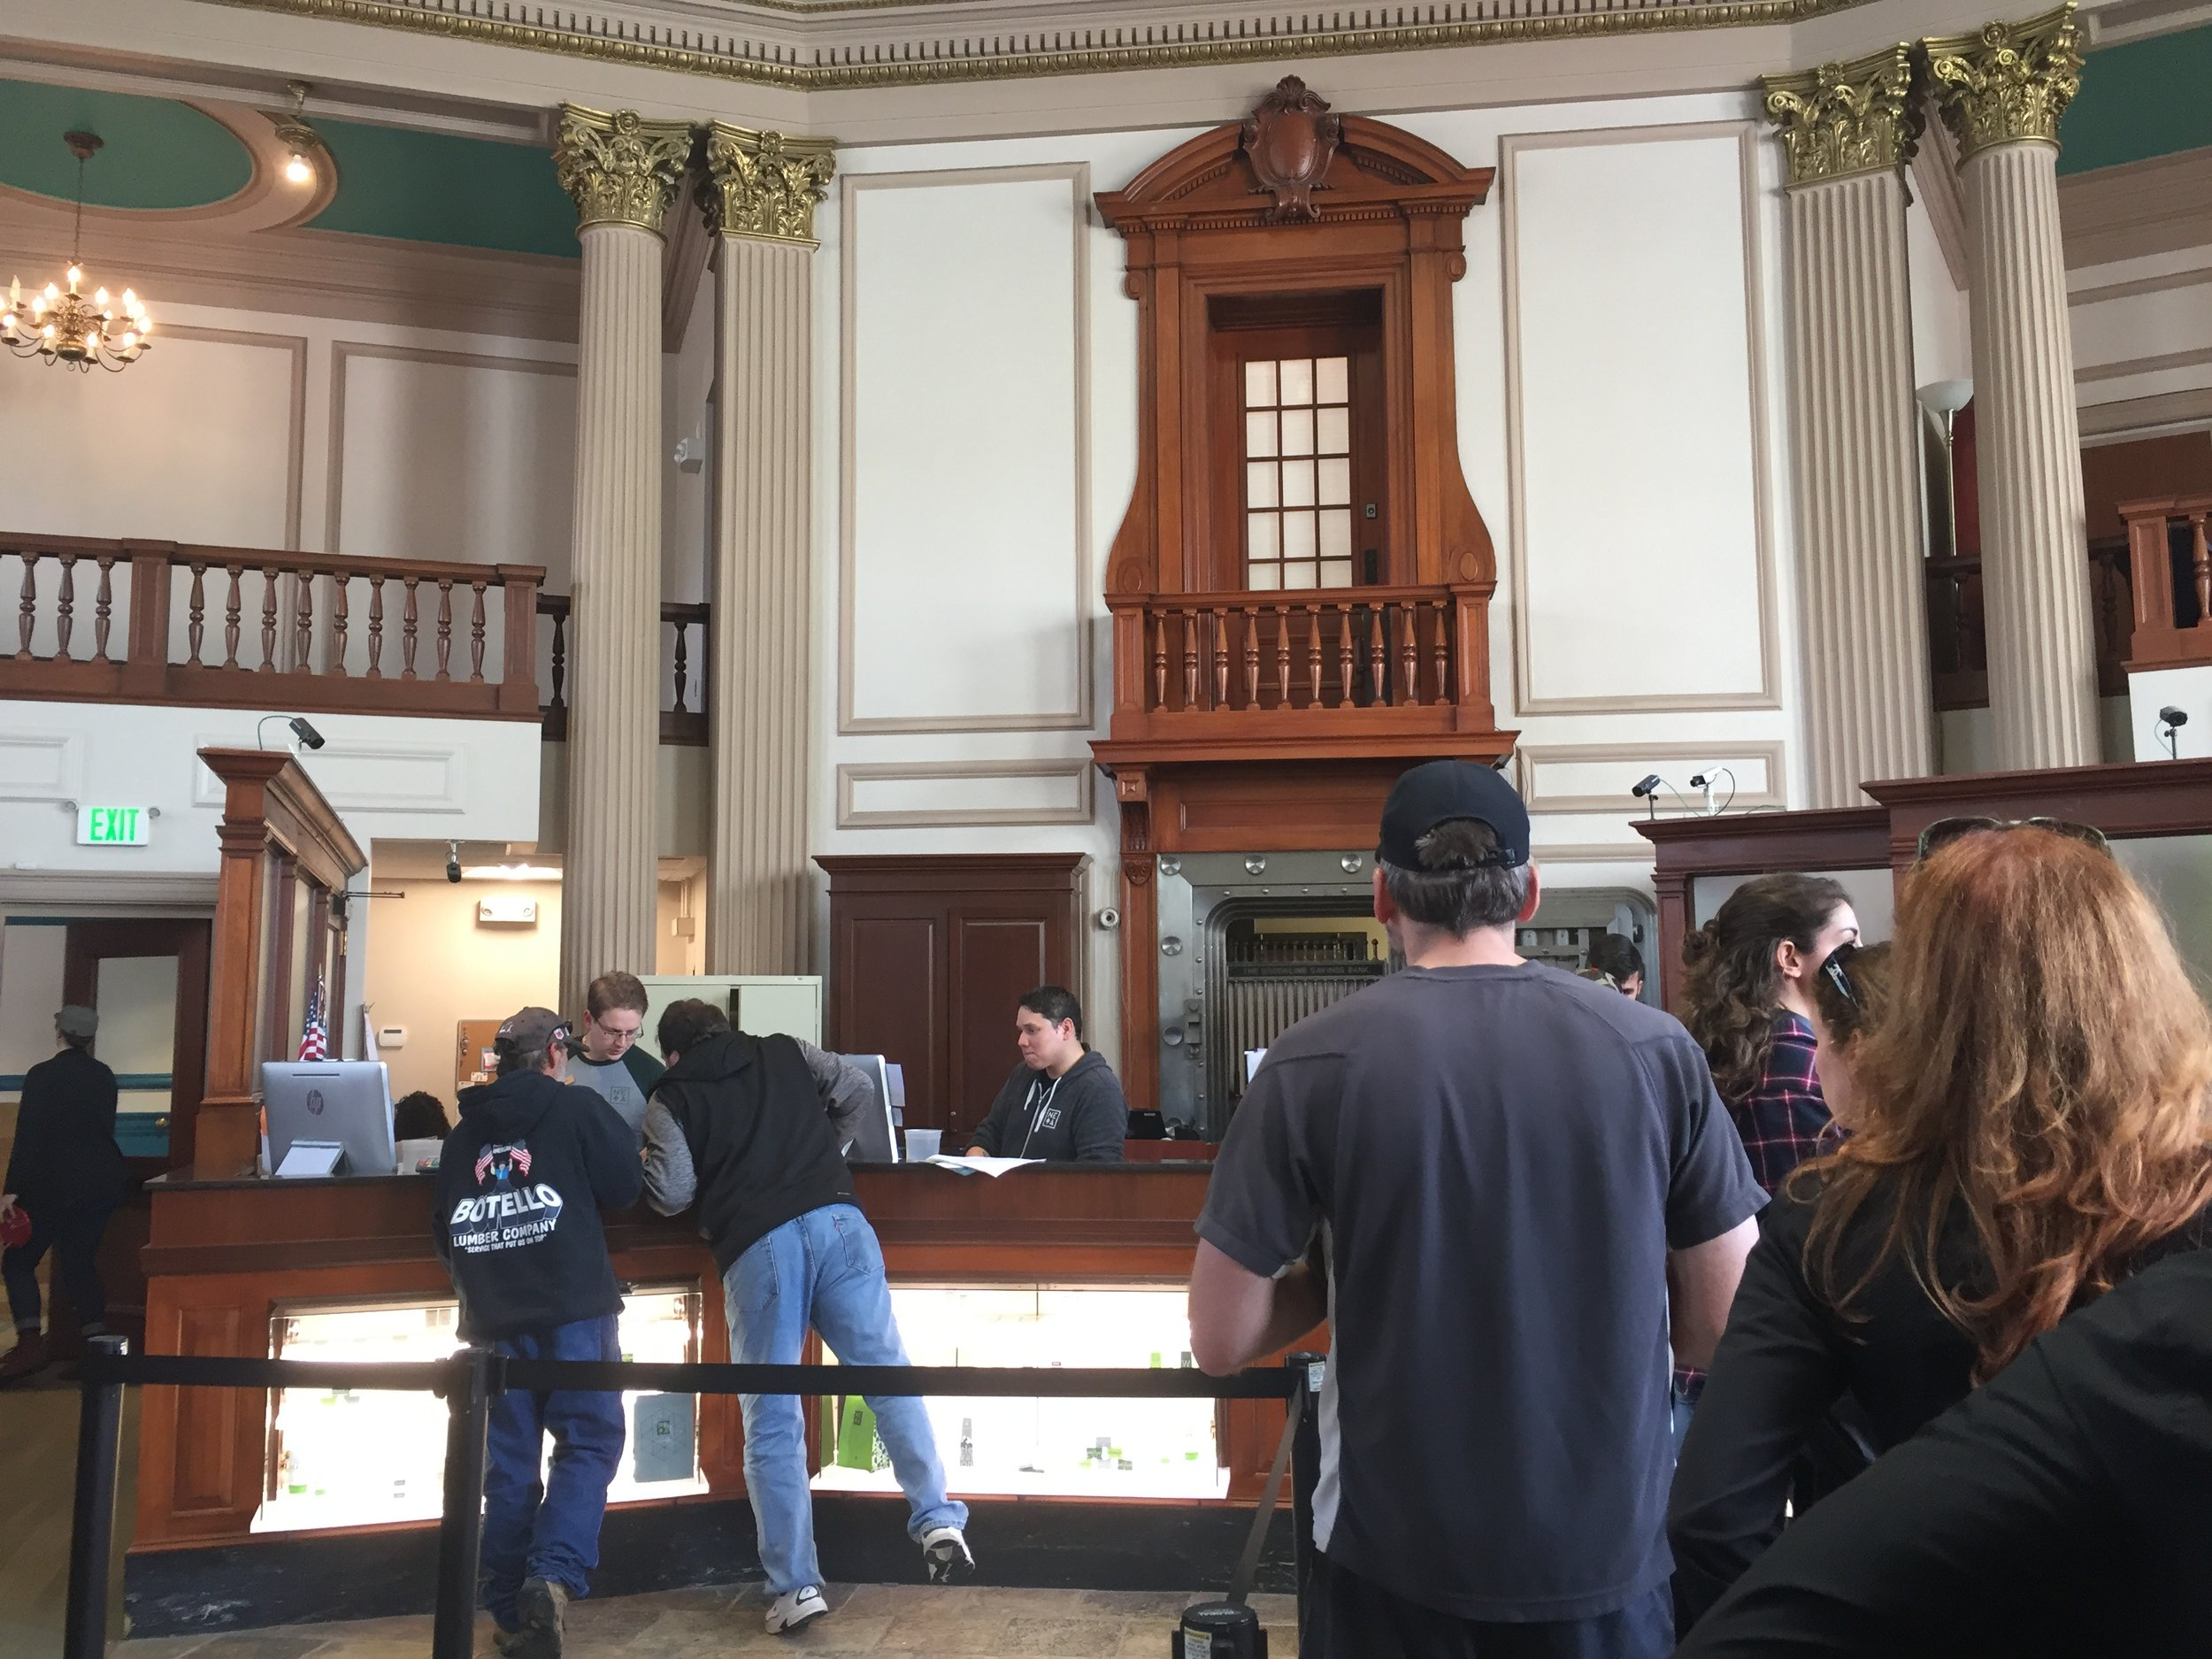 """Customers in line to consult with """"bud-tenders"""" at the NETA medical marijuana dispensary in Brookline, Mass. in May, 2016. The dispensary, the busiest in the Boston area, is housed in a former bank."""